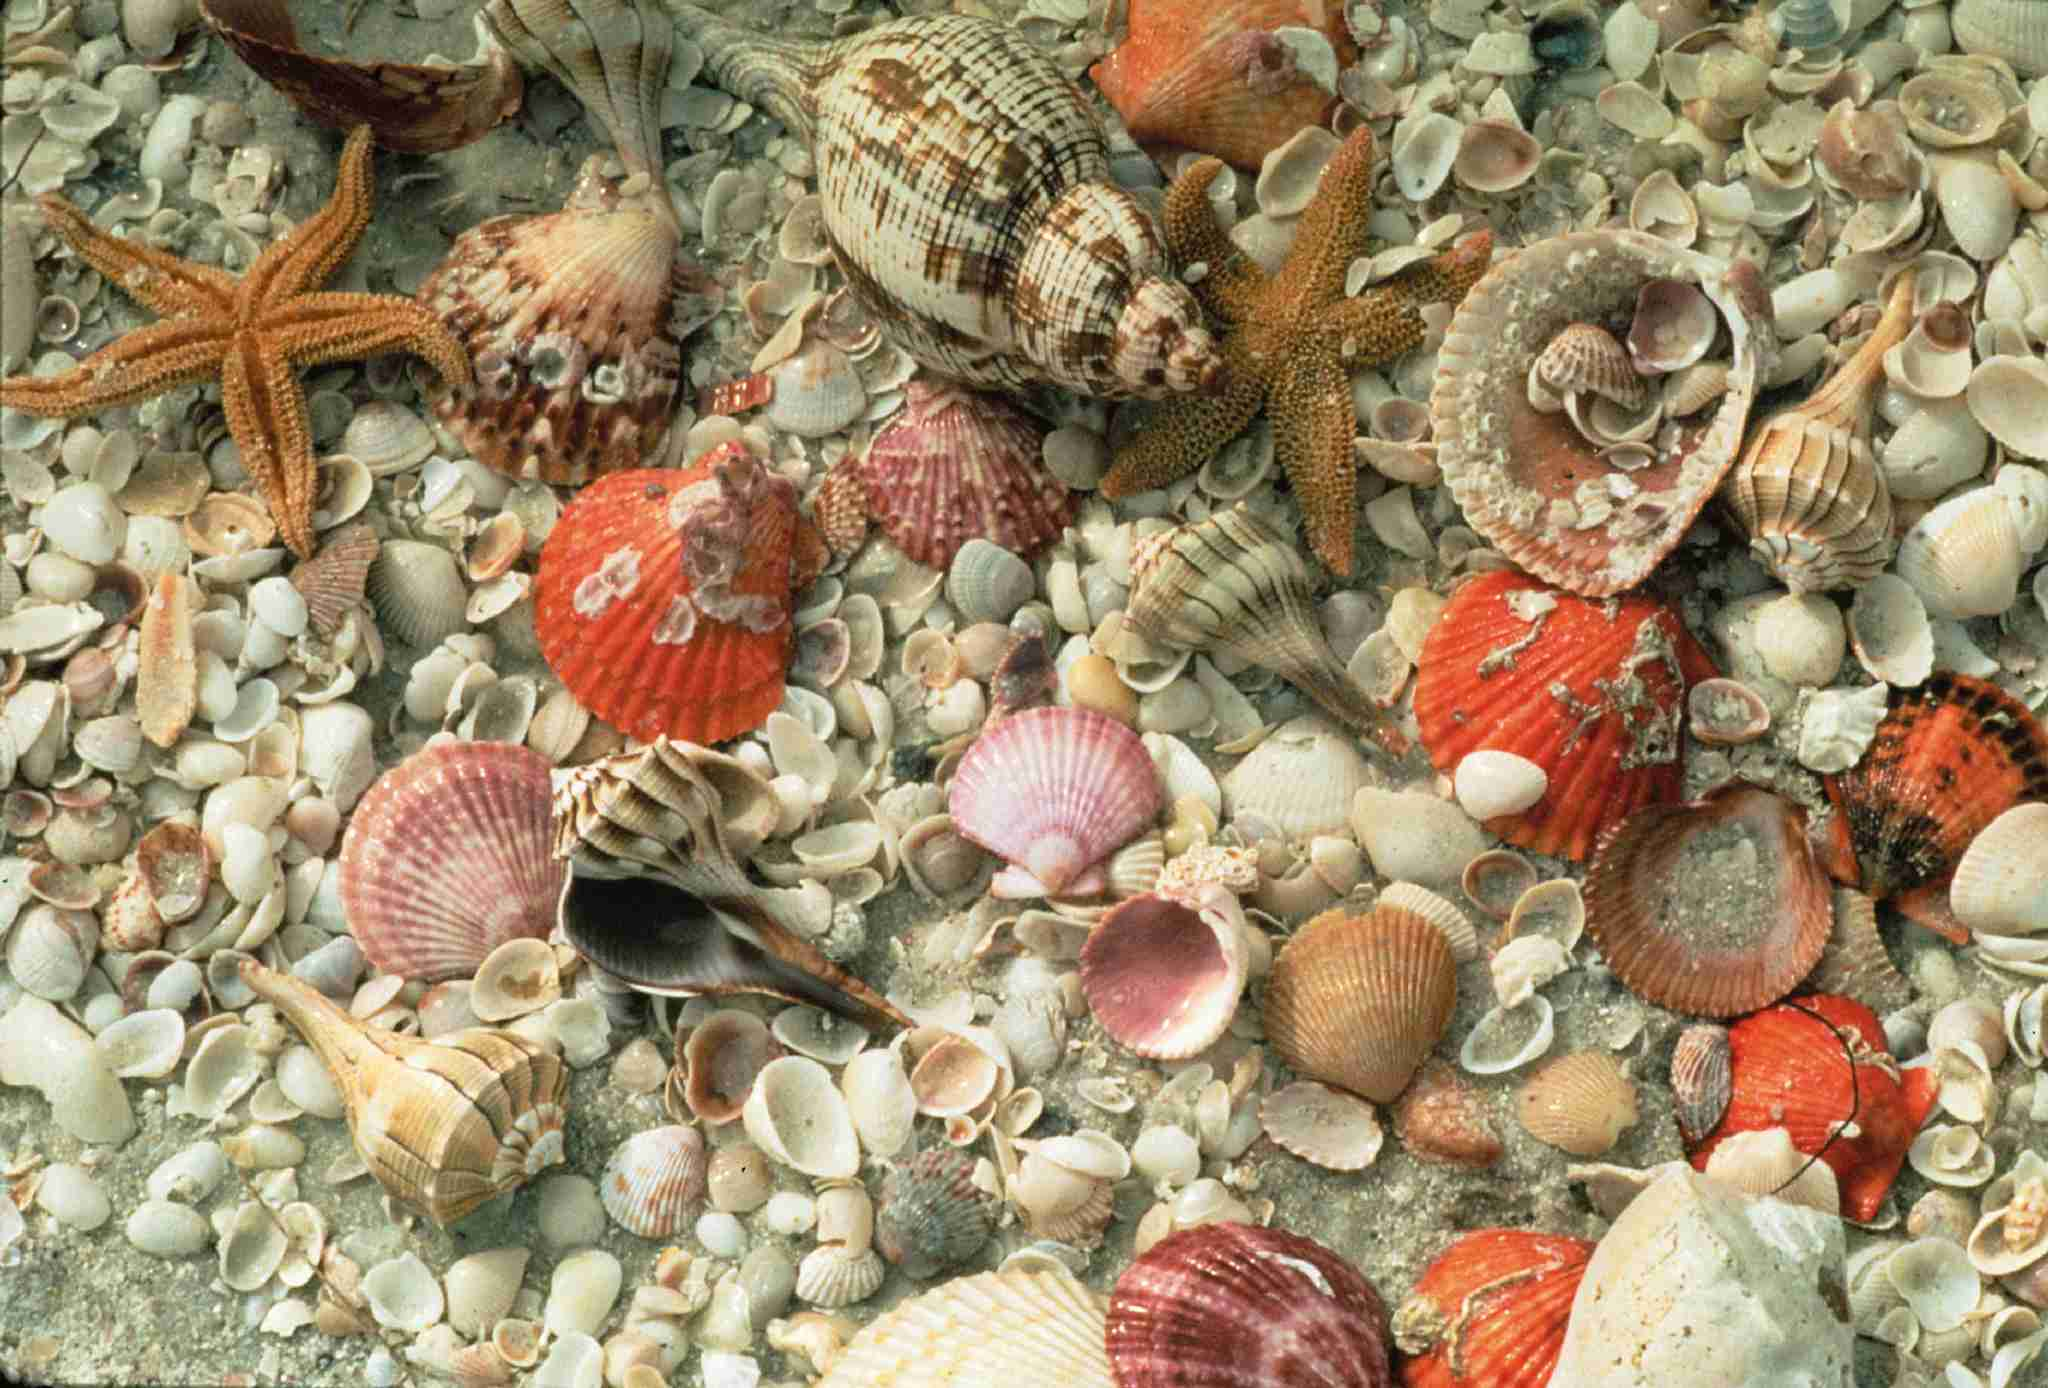 Shelling on Sanibel Island - Florida